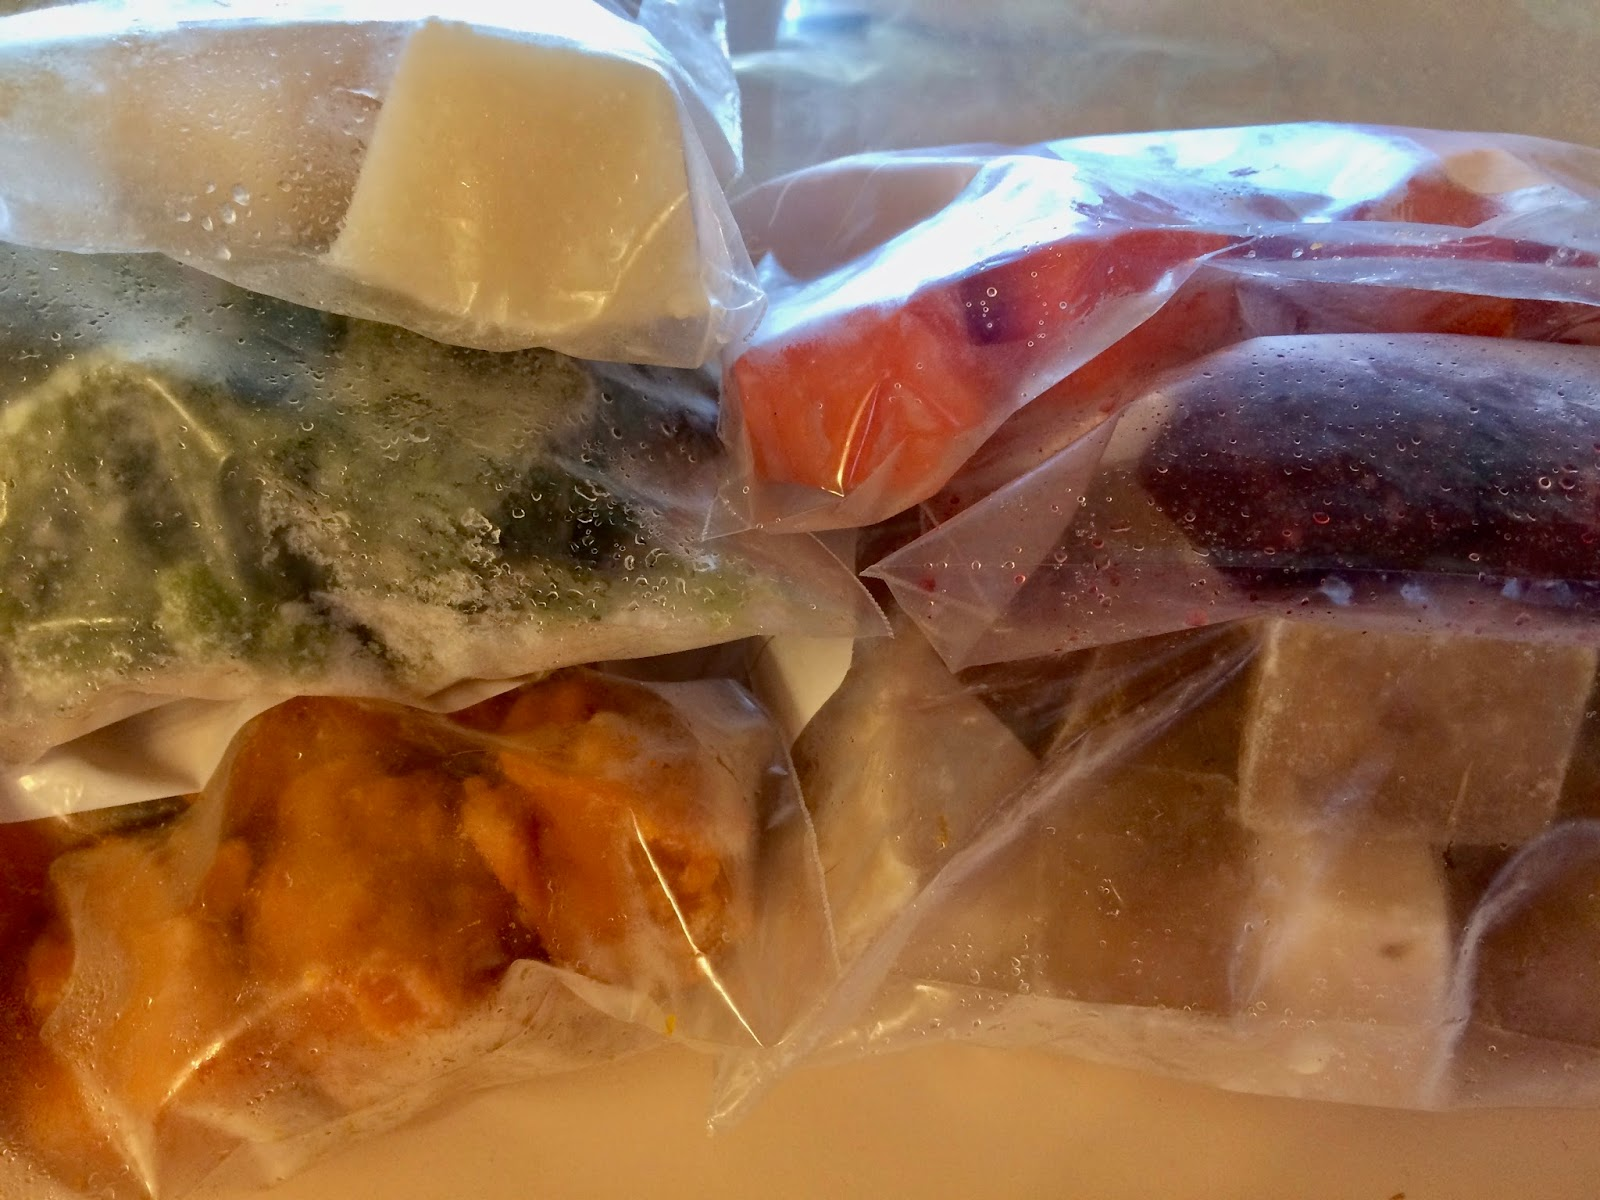 Savory moments homemade baby food pures advanced freezer bags full of baby food ice cubes including pears green beans winter squash the above sweet potatored pepperapple mix blueberry applesauce forumfinder Images